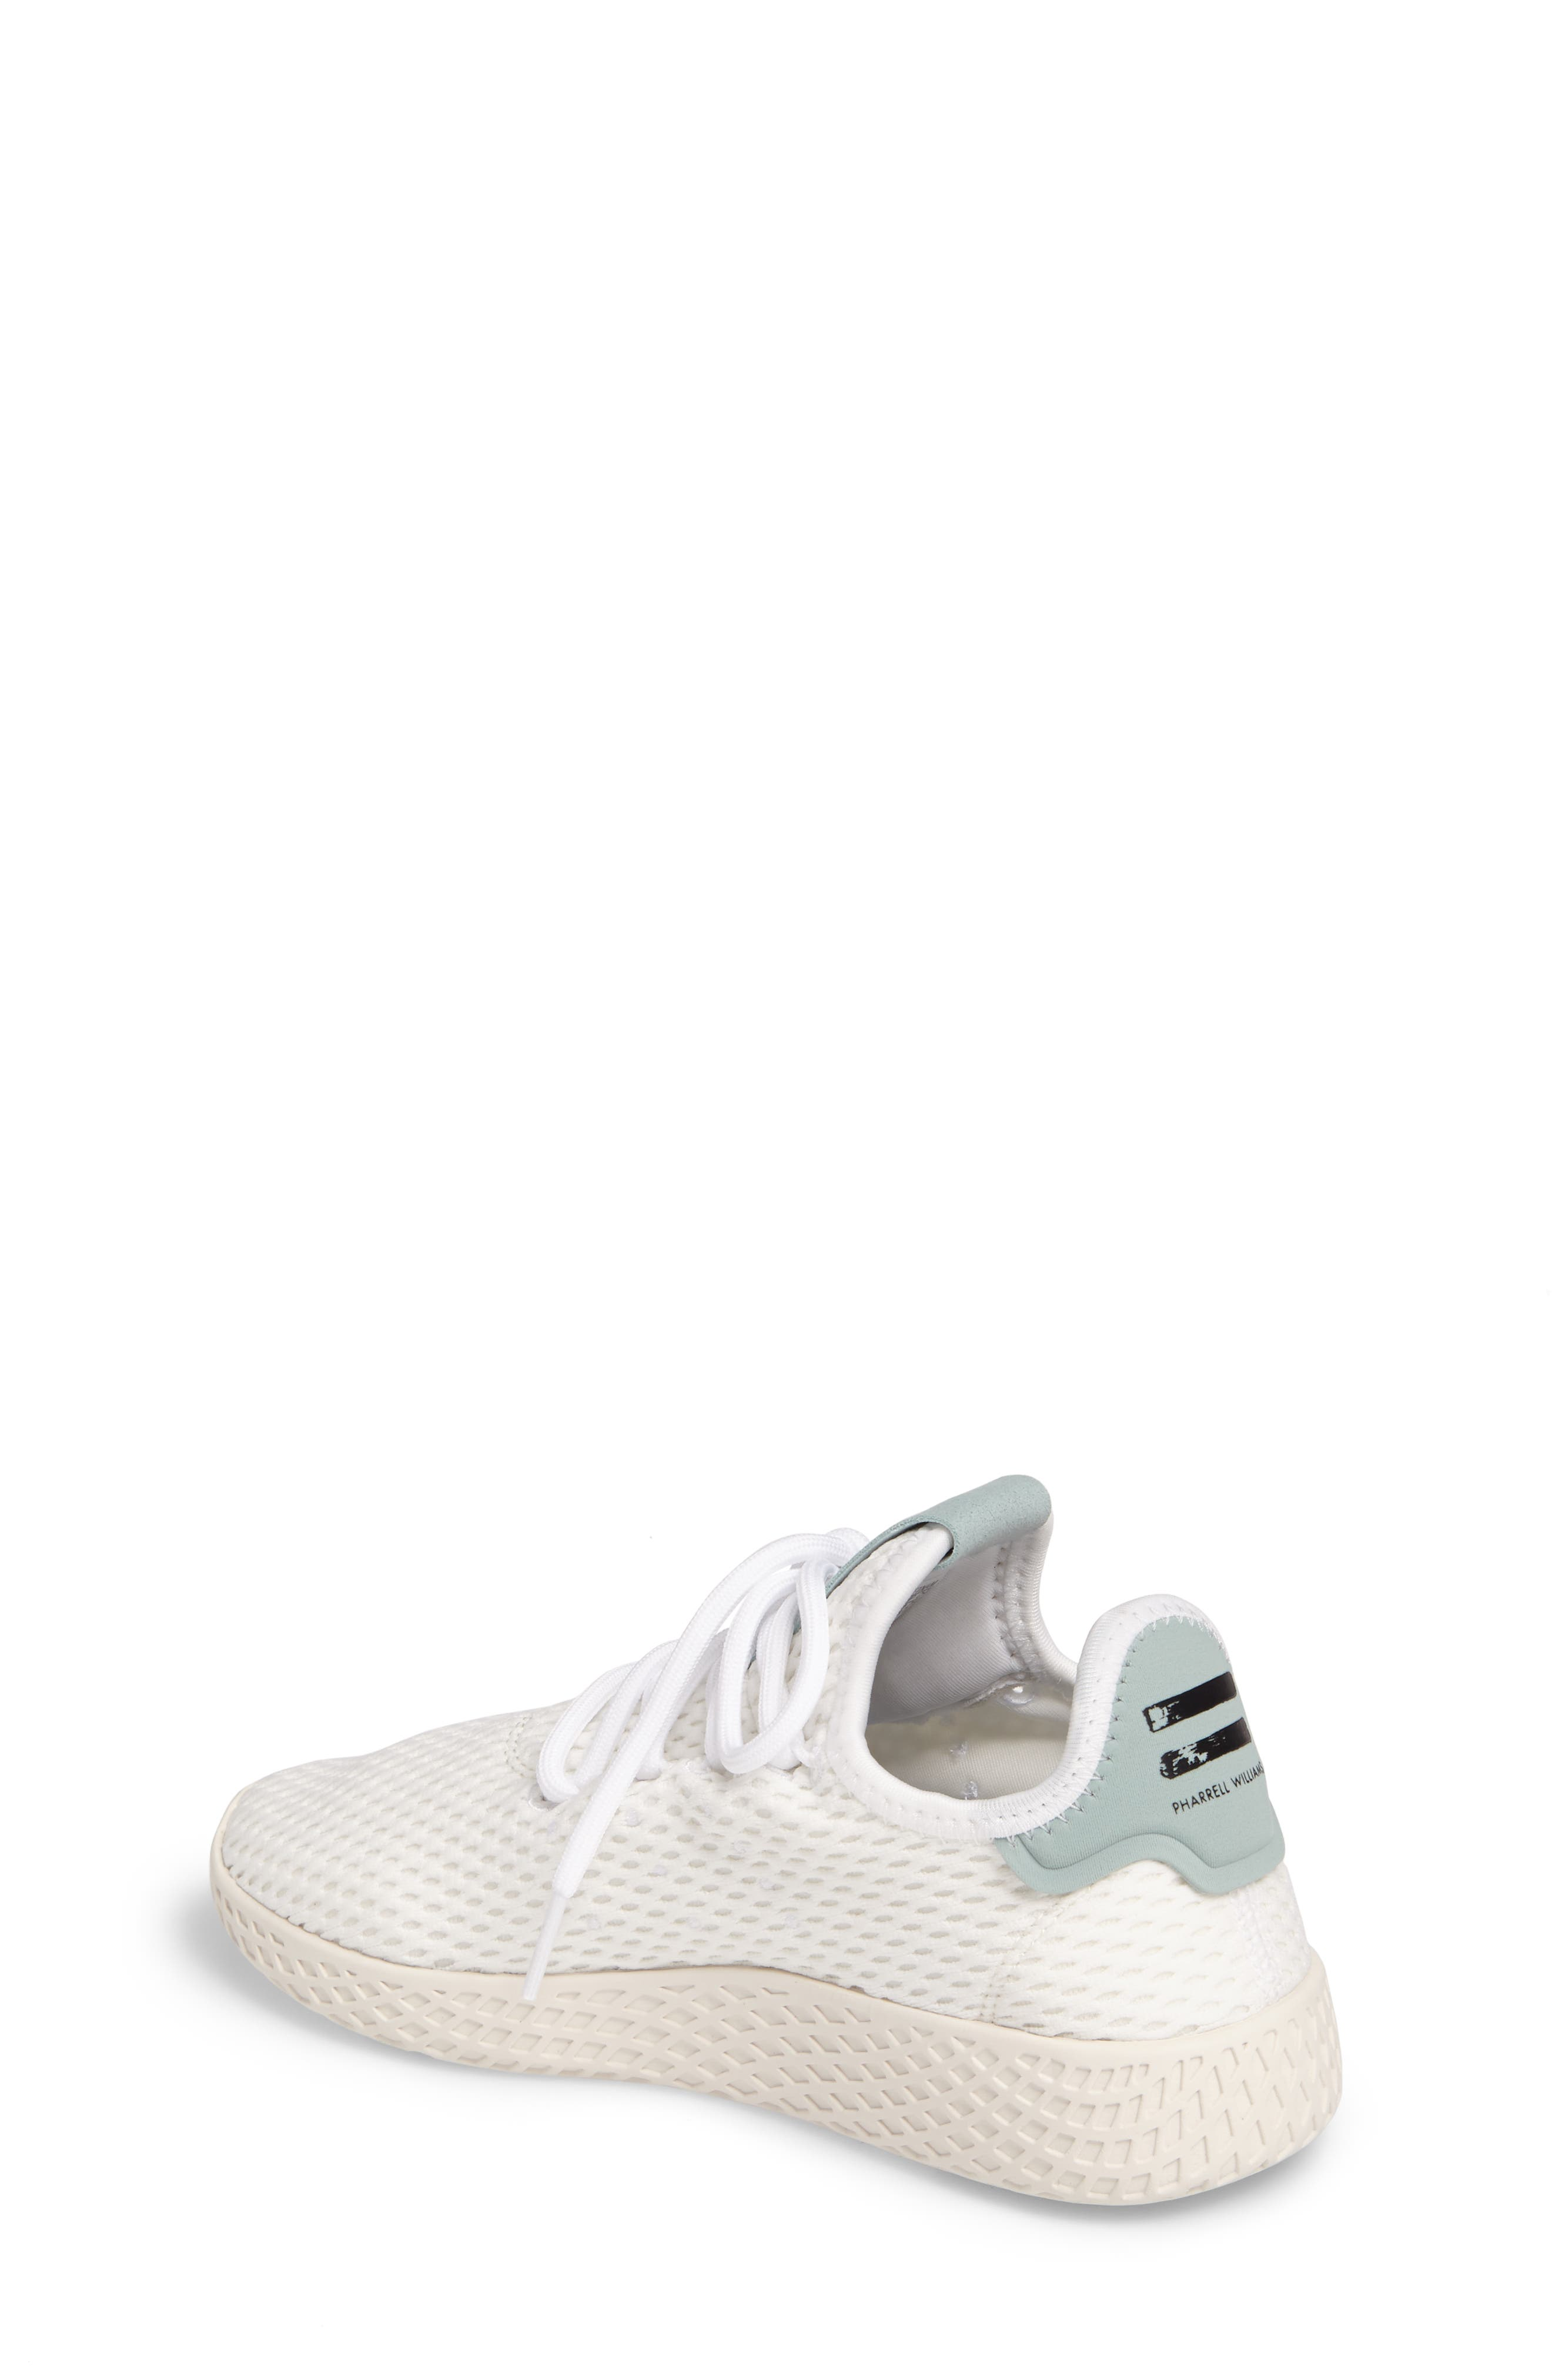 Originals x Pharrell Williams The Summers Mesh Sneaker,                             Alternate thumbnail 2, color,                             Footwear White/ Linen Green